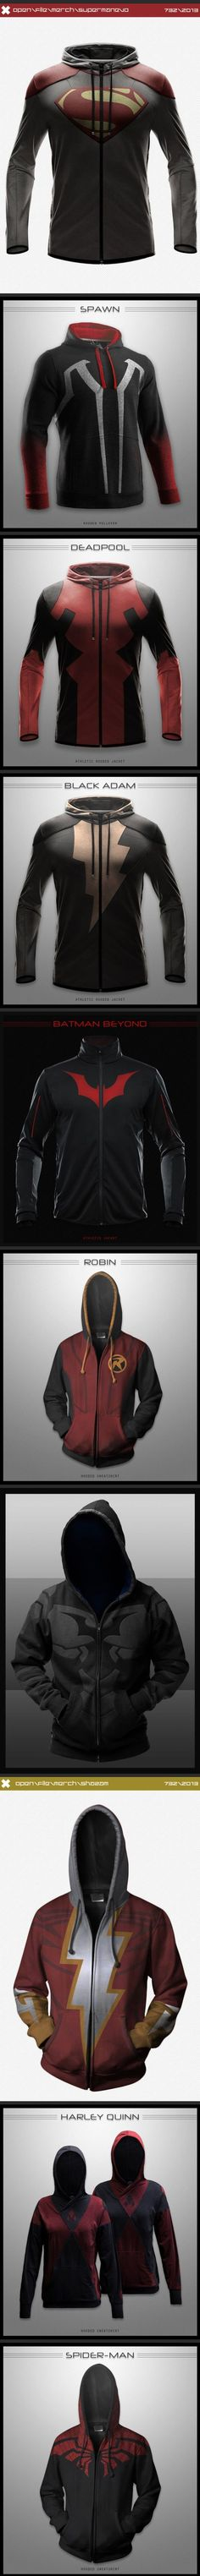 Superhoodies